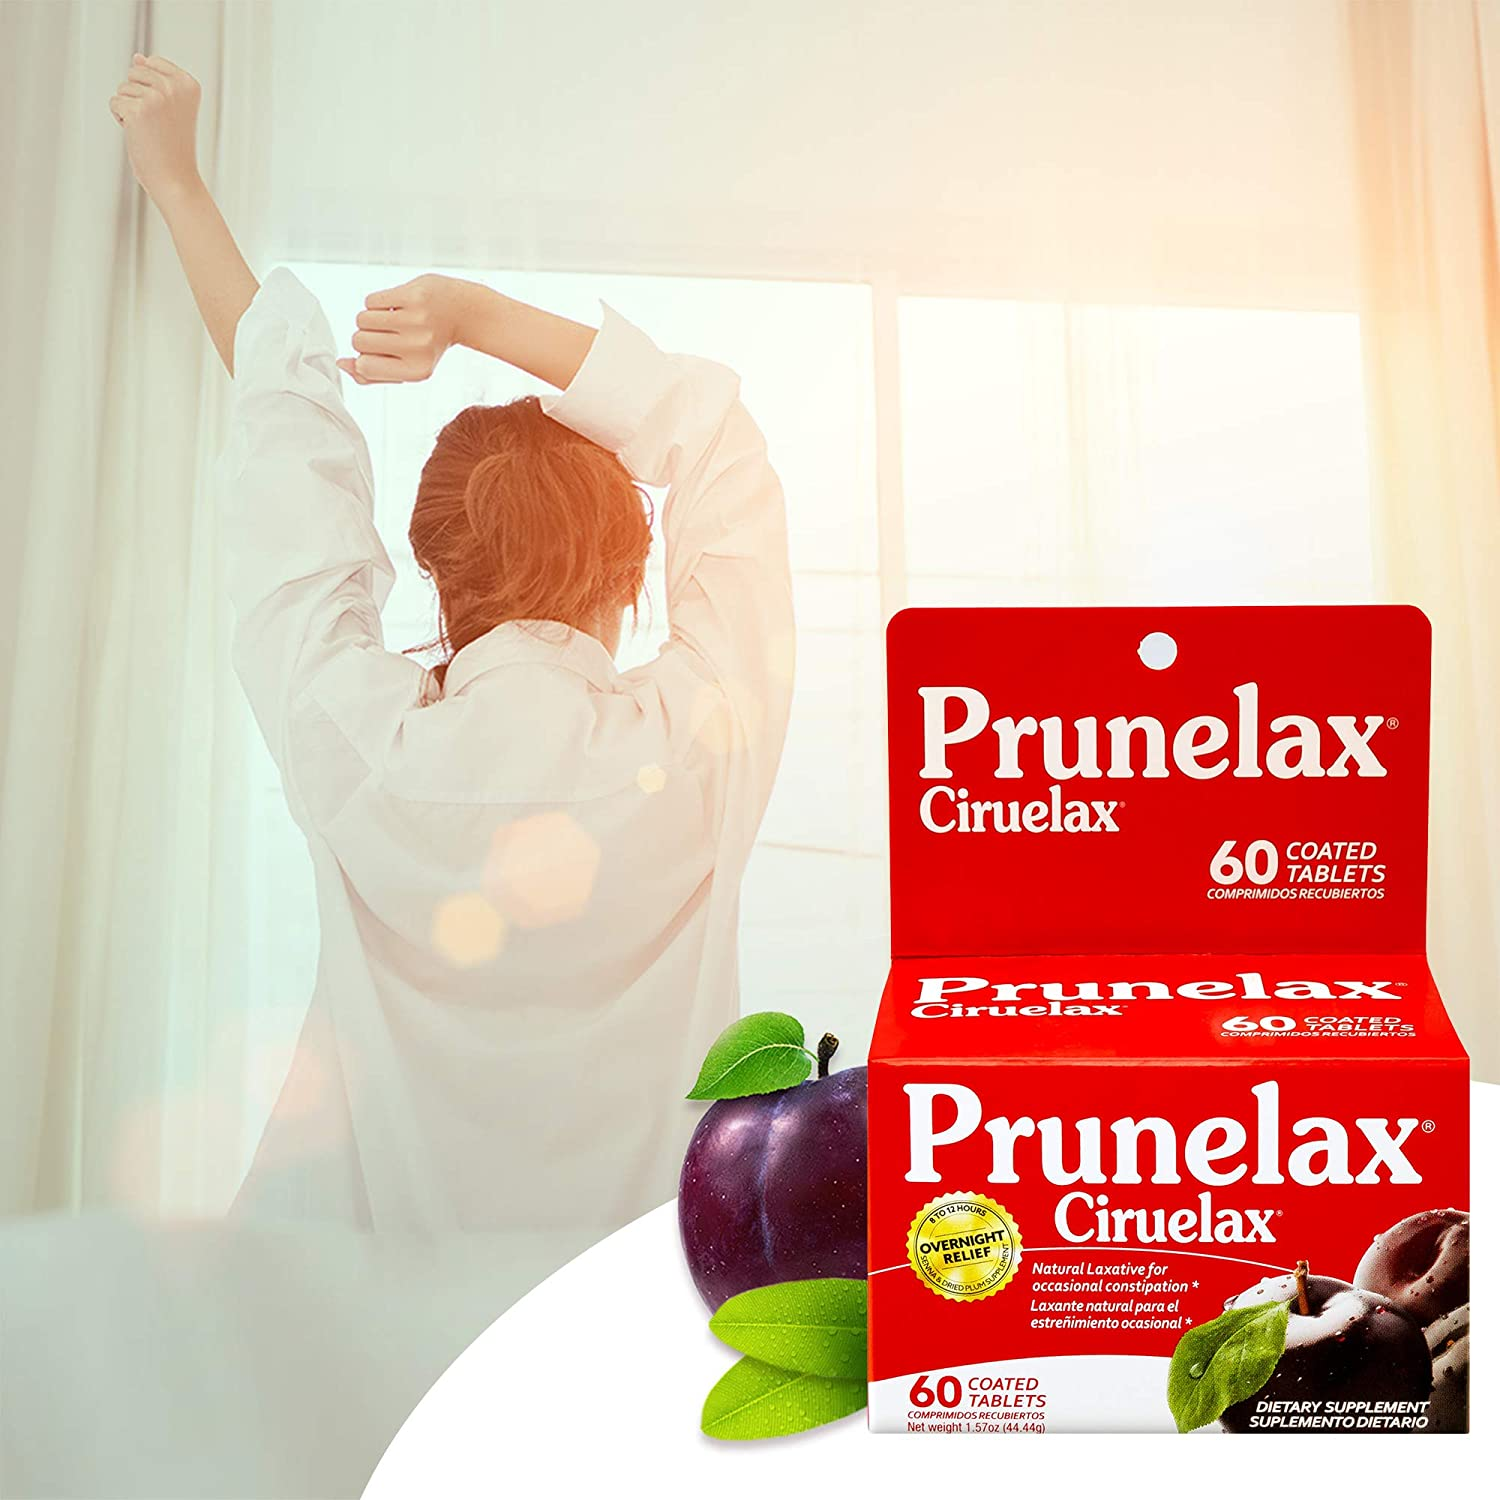 Amazon.com: Prunelax Ciruelax Natural Laxative Regular Tablets, 60 Count: Health & Personal Care